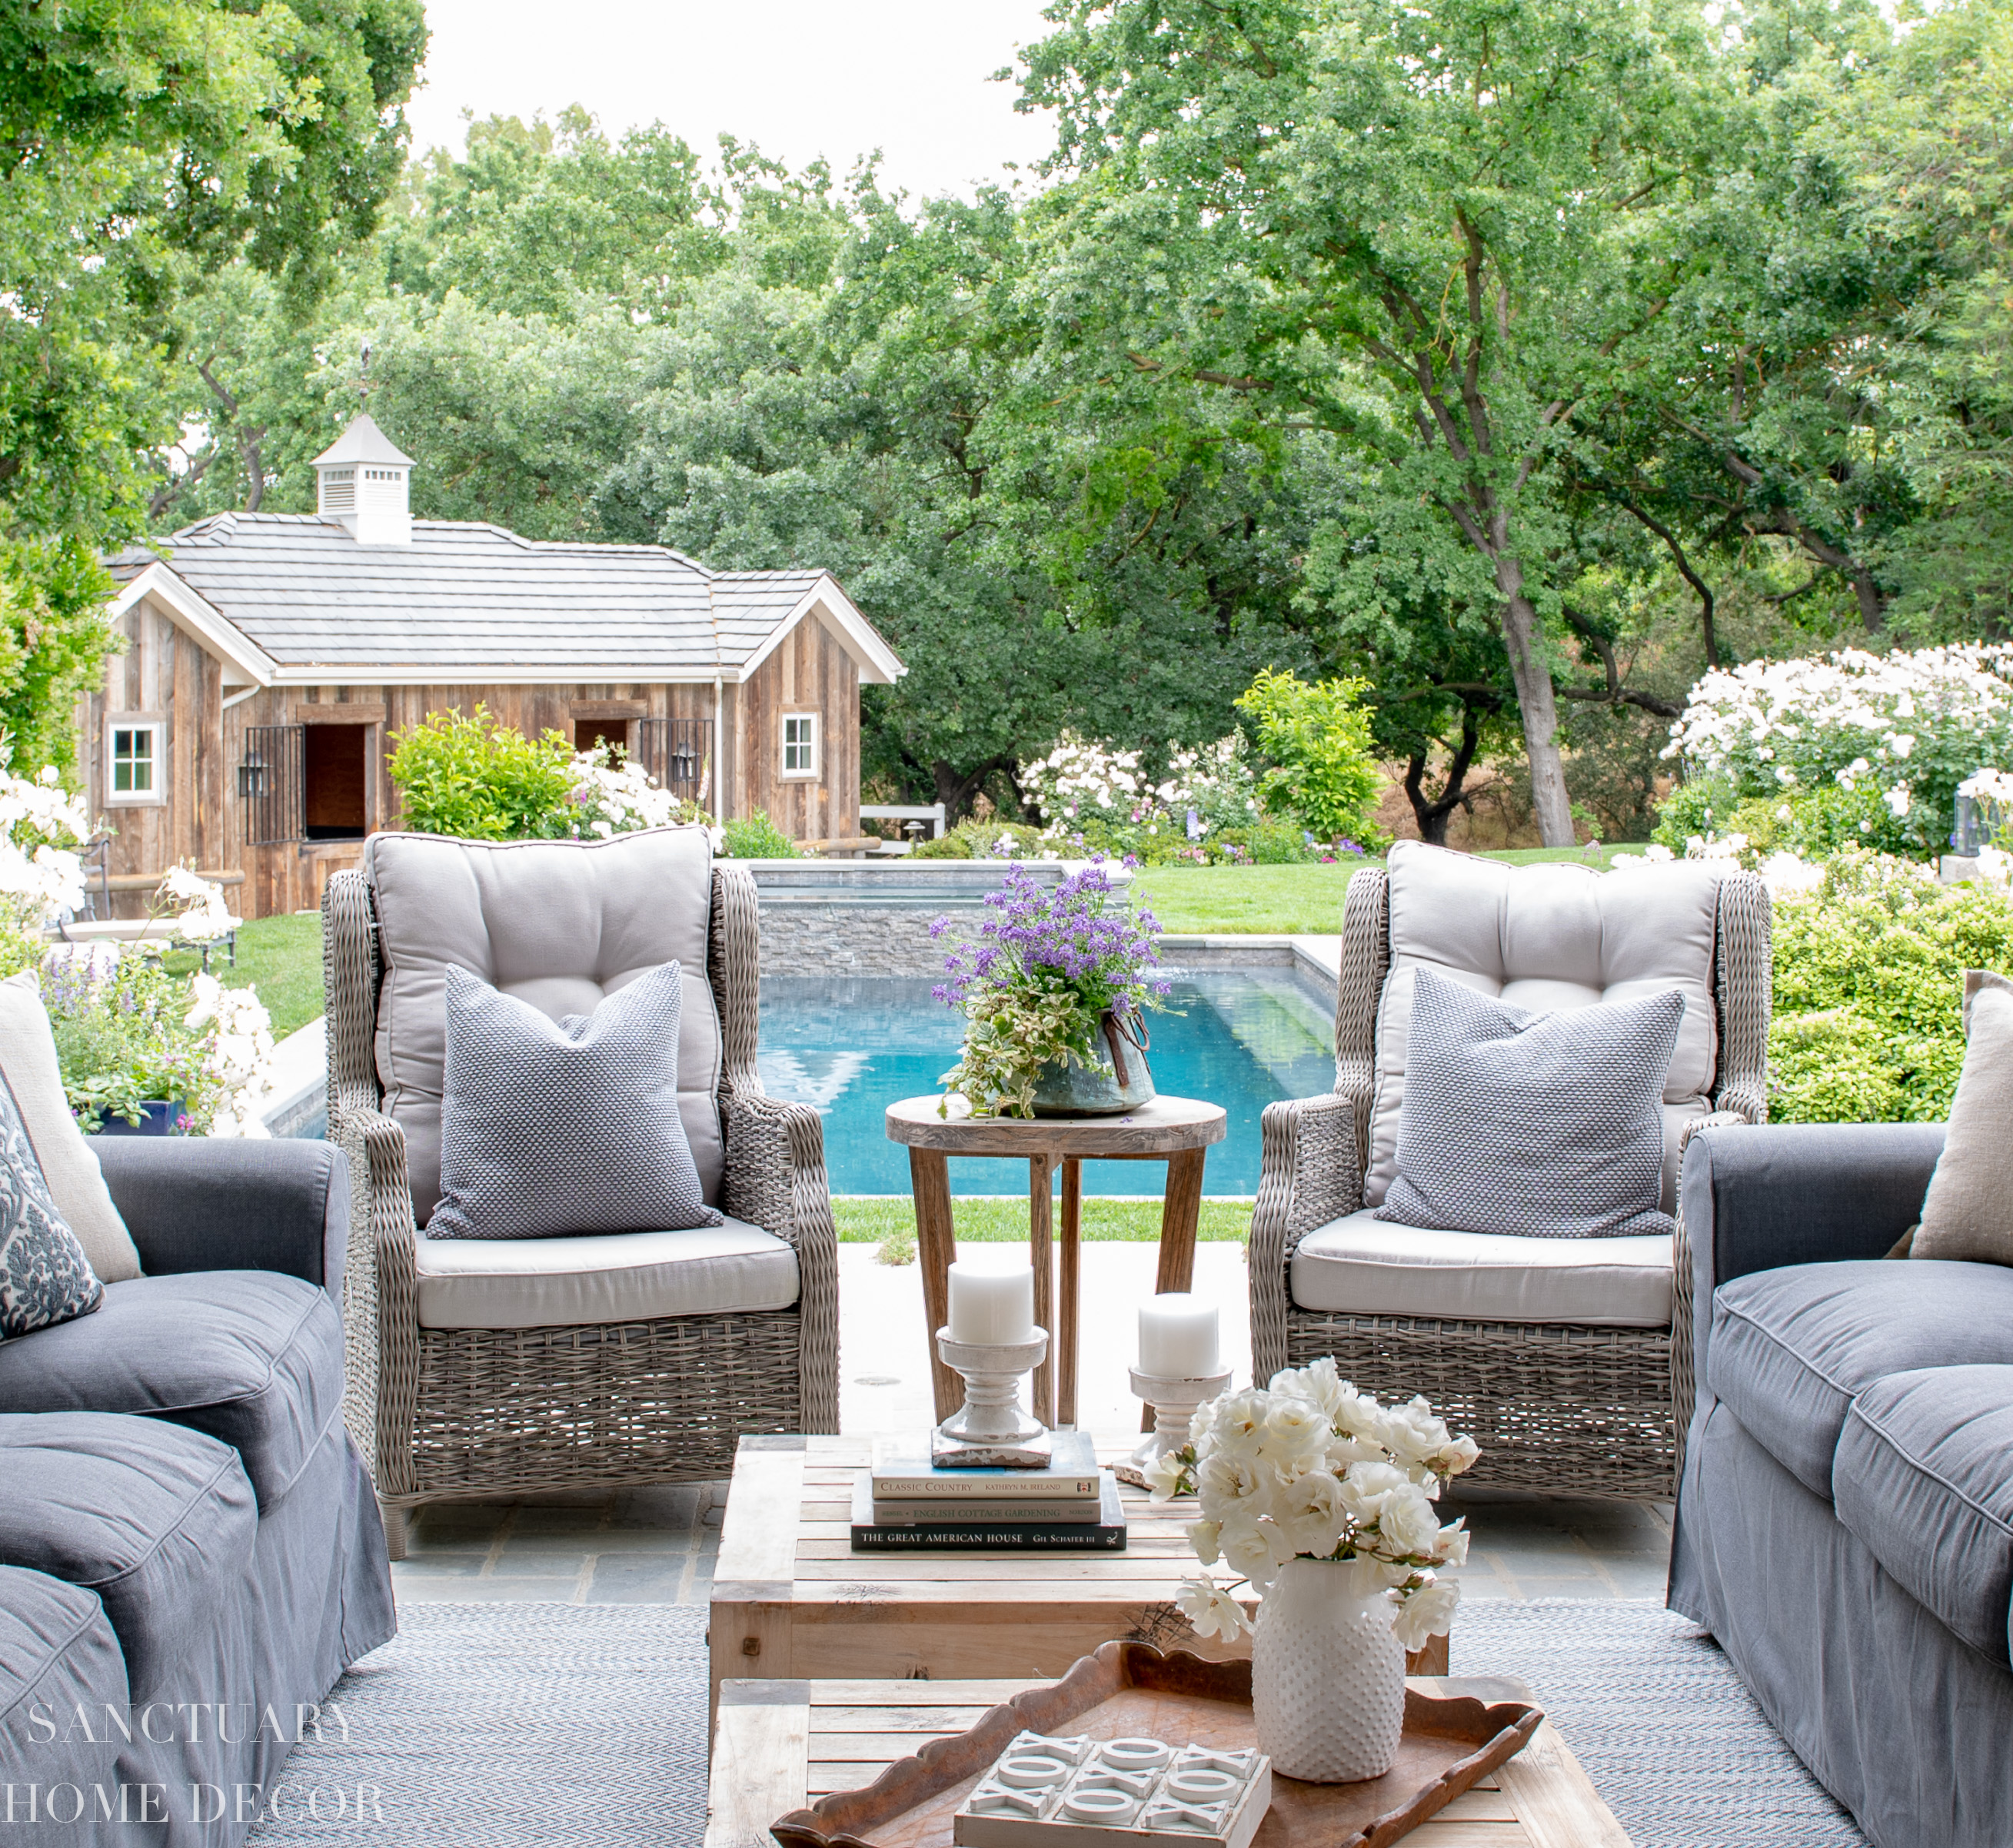 sanctuary home decor patio and pool